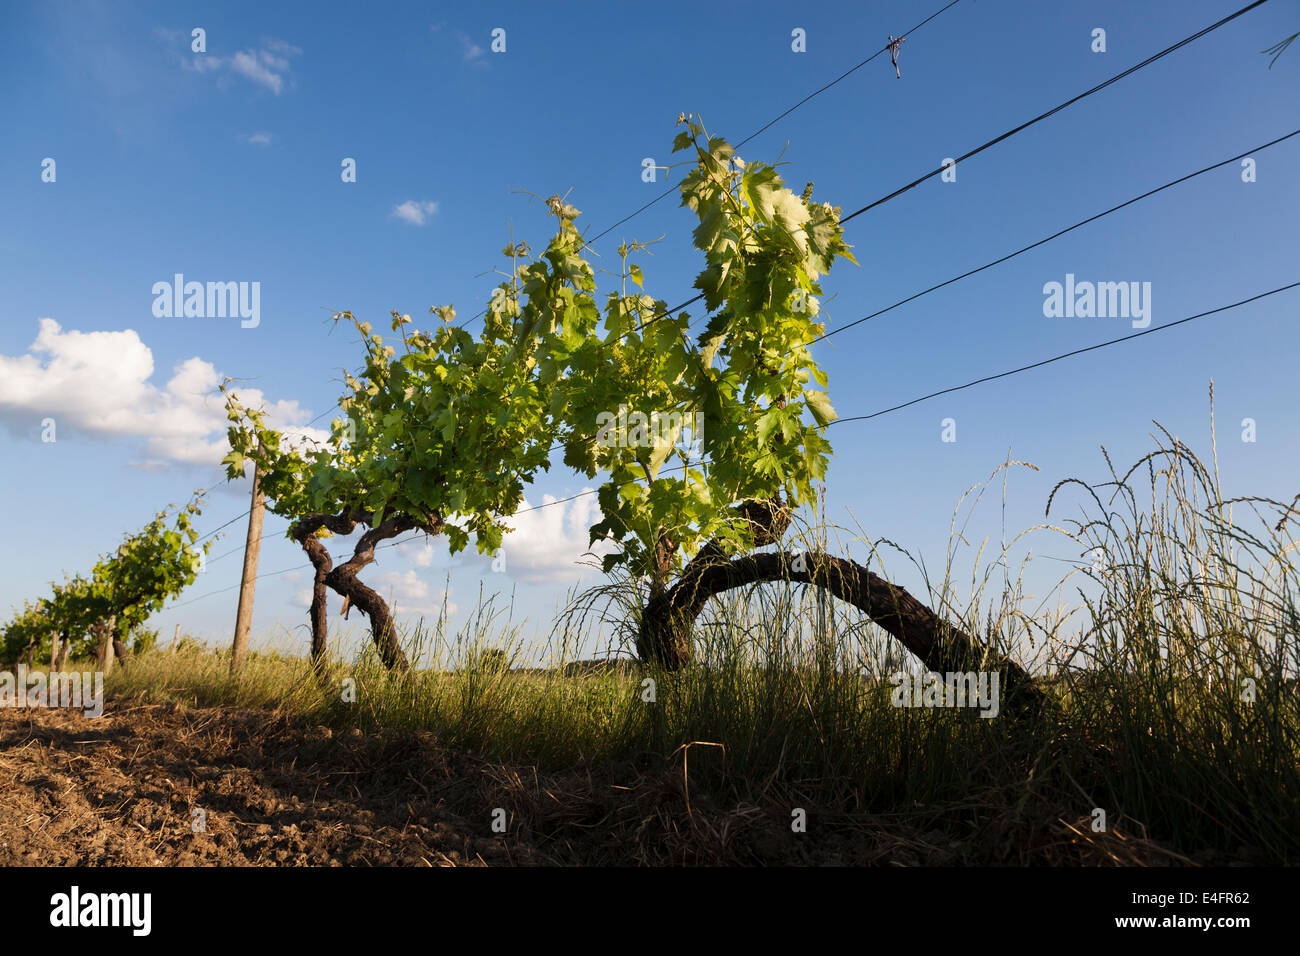 dramatic low angle view of grape vine in June against blue sky. Stock Photo